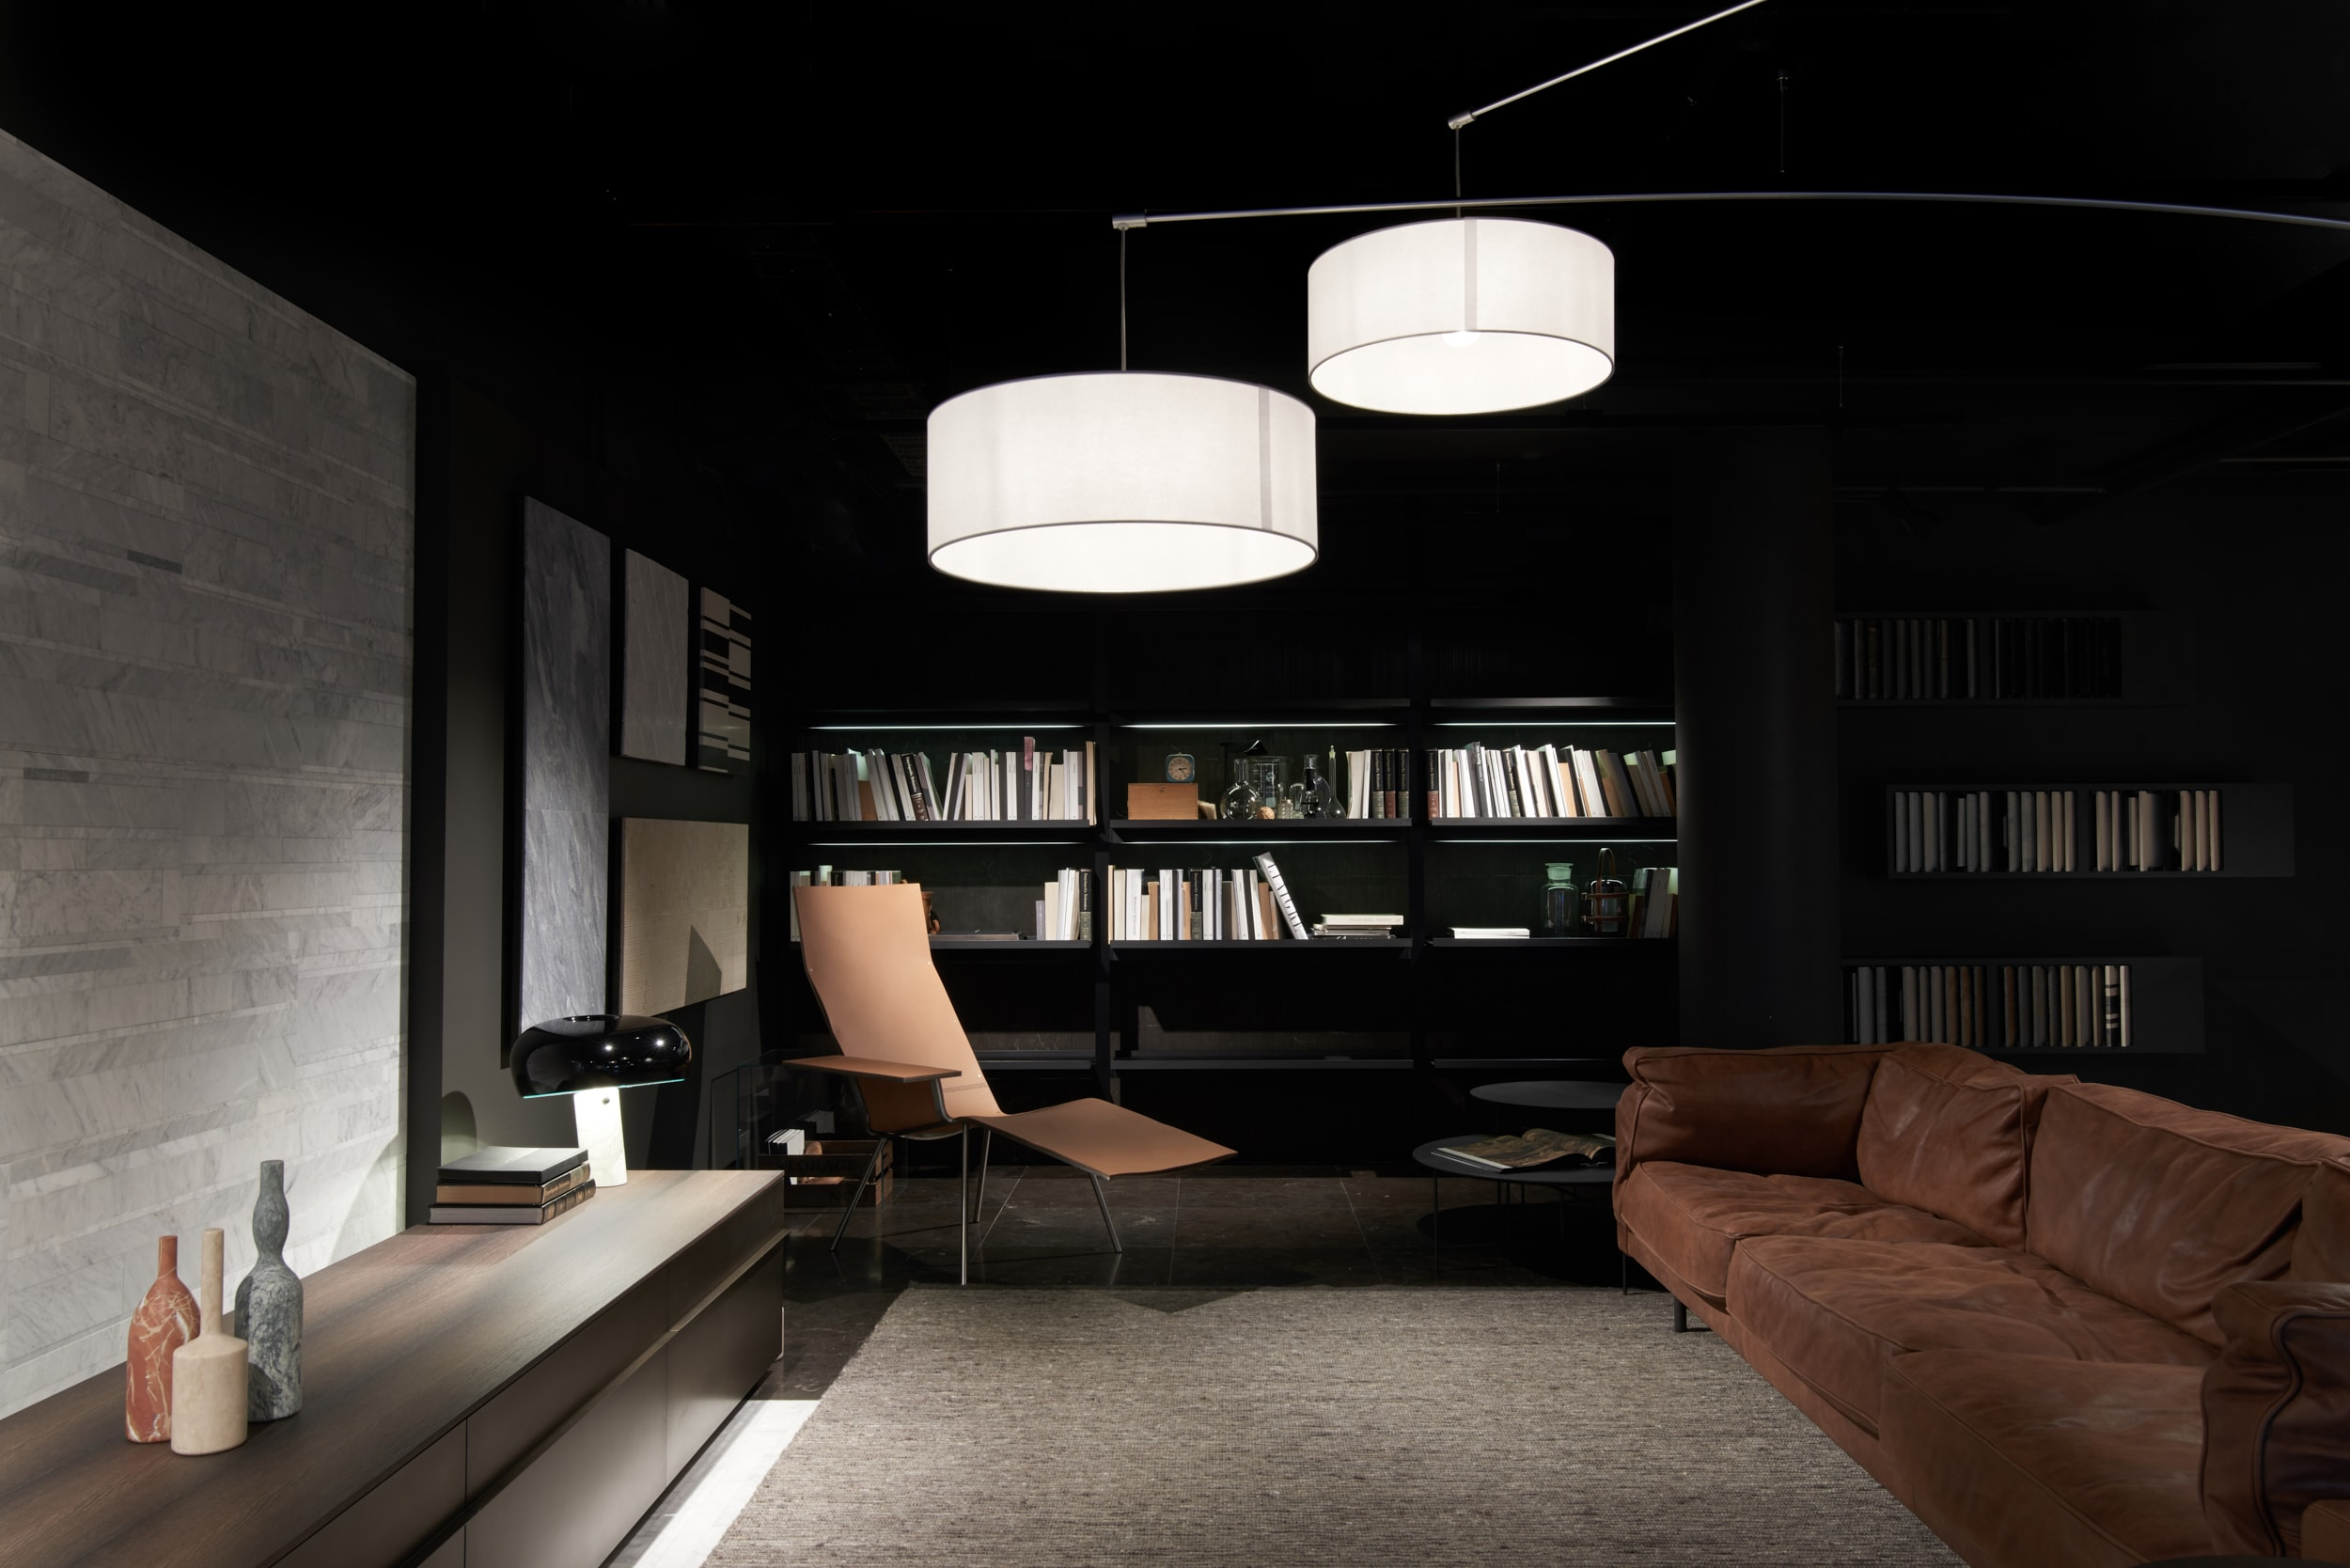 Boffi Studio Sidney presents De Padova collection